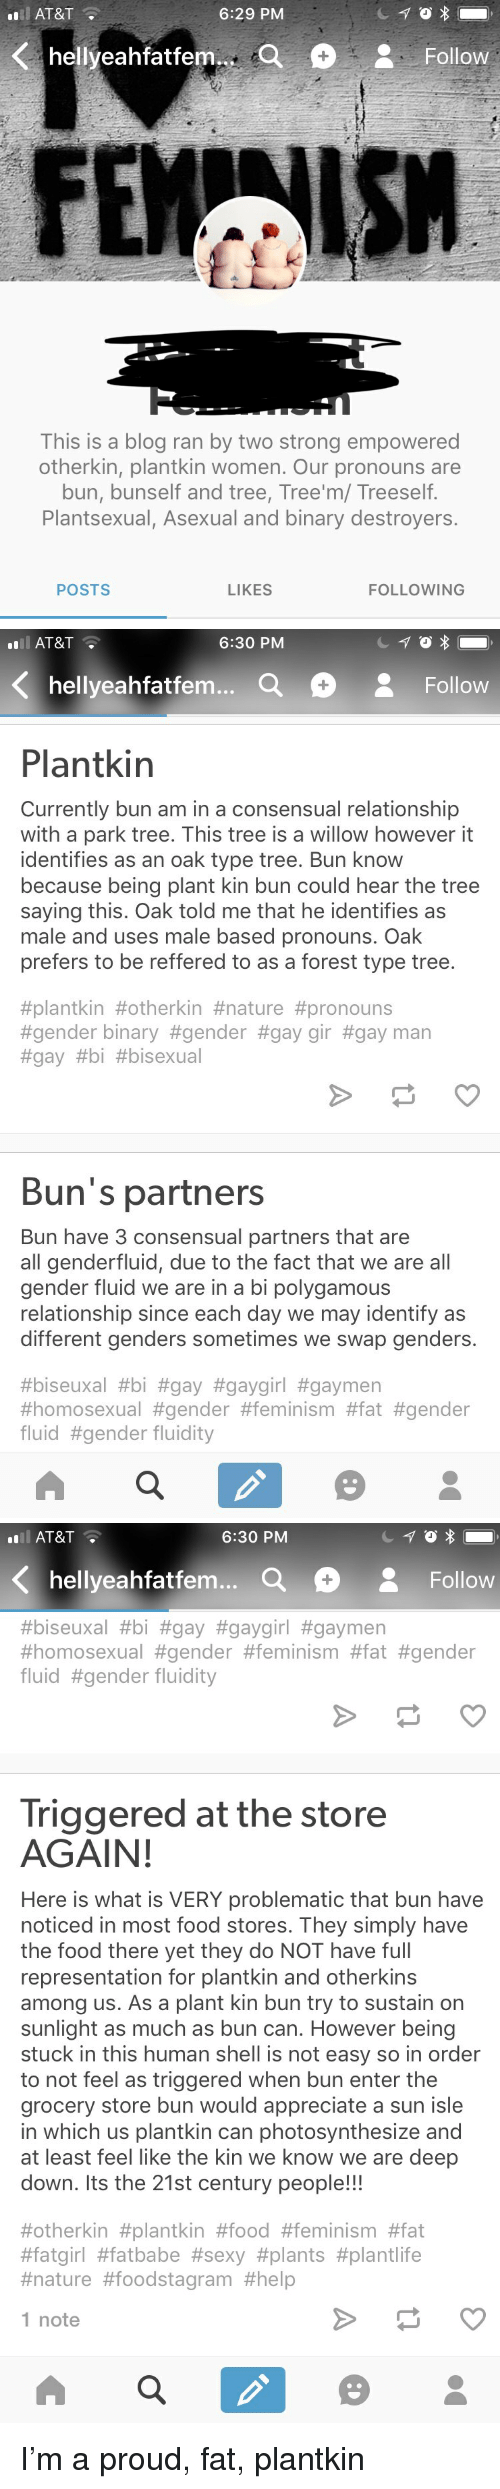 Feminism, Food, and Fucking: AT&T  6:29 PM  FEMAISH  This is a blog ran by two strong empowered  otherkin, plantkin women. Our pronouns are  bun, bunself and tree, Tree'm/ Treeself  Plantsexual, Asexual and binary destroyers.  POSTS  LIKES  FOLLOWING   ll AT&T  6:30 PM  hellyeahfatfem...  Follow  Plantkin  Currently bun am in a consensual relationship  with a park tree. This tree is a willow however it  identifies as an oak type tree. Bun know  because being plant kin bun could hear the tree  saying this. Oak told me that he identifies as  male and uses male based pronouns. Oak  prefers to be reffered to as a forest type tree  #plantkin #otherkin #nature #pronouns  #gender binary #gender #gaygr #gay man  #gay #bi #bisexual  Bun's partners  Bun have 3 consensual partners that are  all genderfluid, due to the fact that we are all  gender fluid we are in a bi polygamous  relationship since each day we may identify as  different genders sometimes we swap genders.  #biseuxal #bi #gay #gaygirl #gaymen  #homosexual #gender #feminism #fat #gender  fluid #gender fluidity   ll AT&T  6:30 PM  hellyeahfatfem... a  Follow  #biseuxal #bi #gay #gaygirl #gaymen  #homosexual #gender #feminism #fat #gender  fluid #gender fluidity  Triggered at the store  AGAIN  Here is what is VERY problematic that bun have  noticed in most food stores. They simply have  the food there yet they do NOT have full  representation for plantkin and otherkins  among us. As a plant kin bun try to sustain on  sunlight as much as bun can. However being  stuck in this human shell is not easy so in order  to not feel as triggered when bun enter the  grocery store bun would appreciate a sun isle  in which us plantkin can photosynthesize and  at least feel like the kin we know we are deep  down. Its the 21st century people!!!  #otherkin #plantkin #food #feminism #fat  #fatgirl #fatbabe #sexy #plants #plantlife  #nature #foodstagram #help  1 note I'm a proud, fat, plantkin